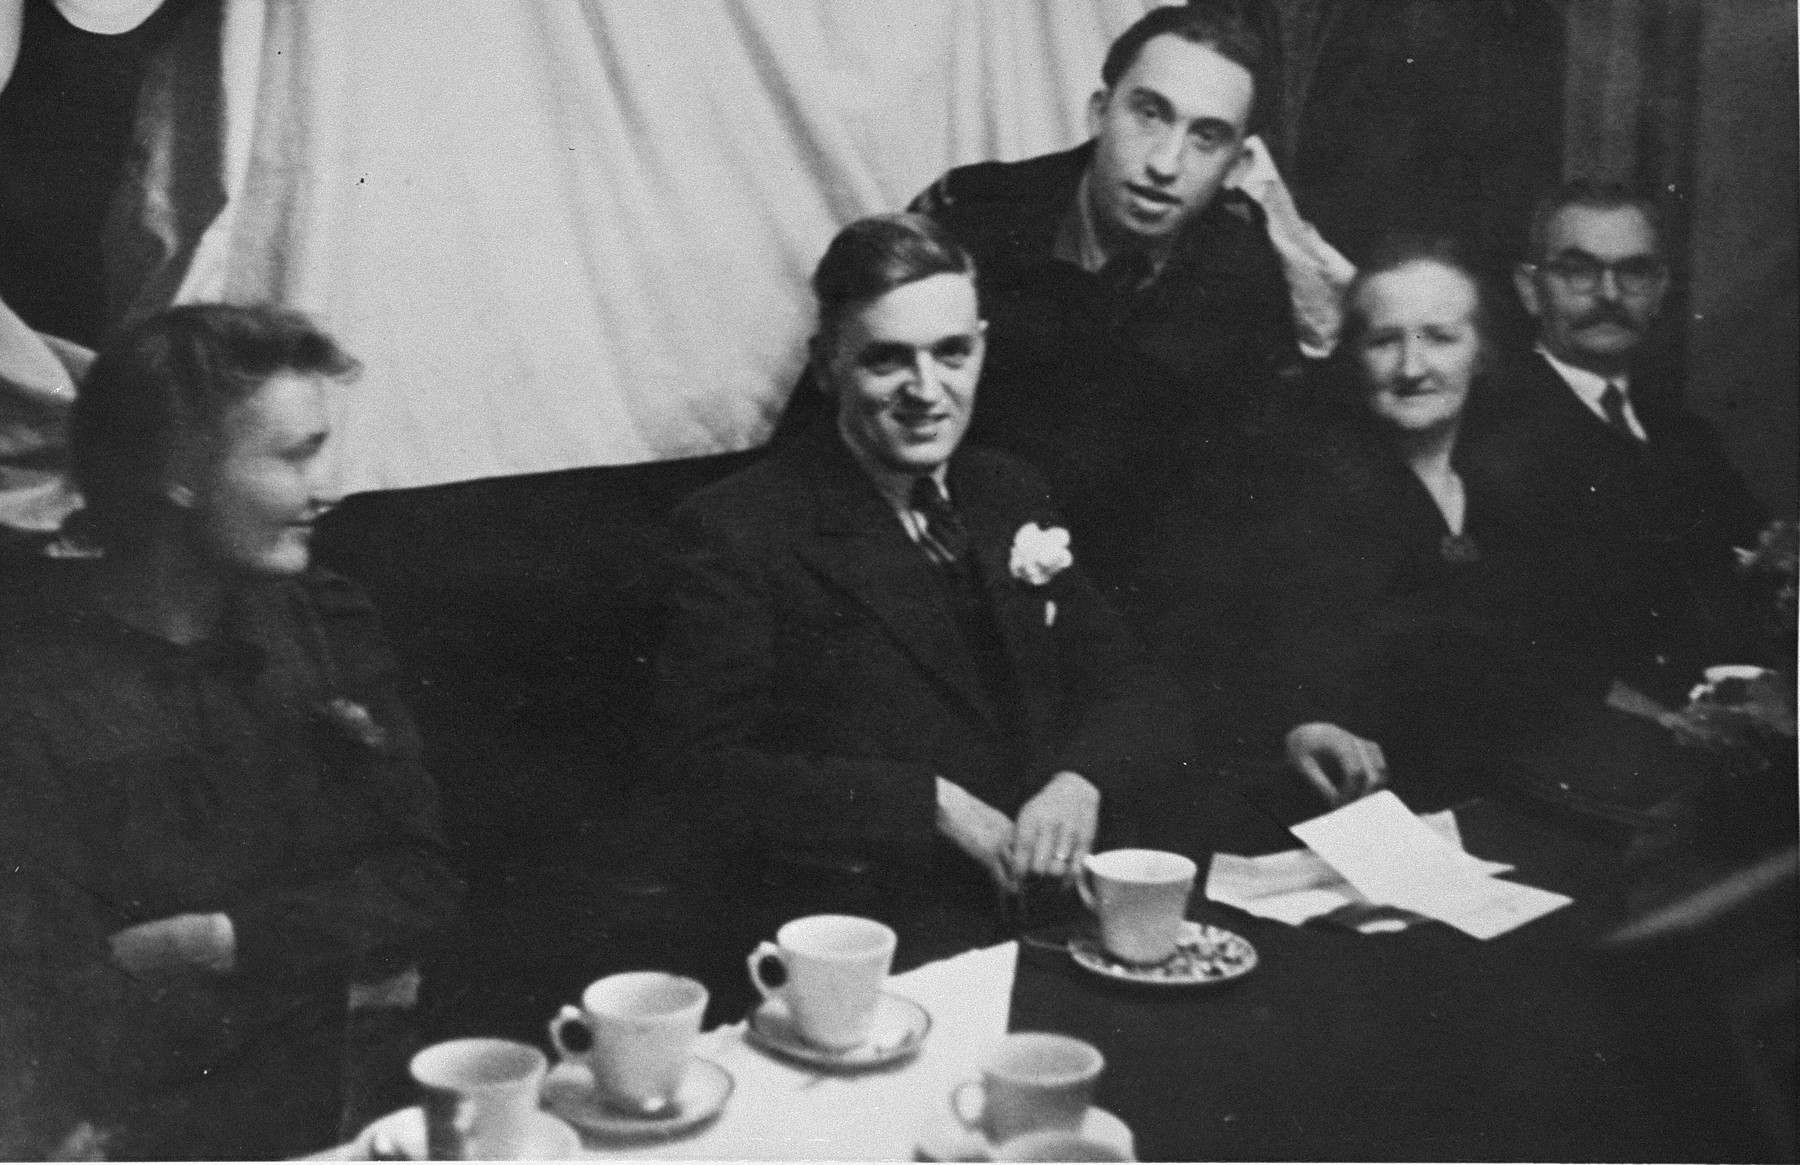 Fritz Freilich (standing) poses with members of the van Mansum family who hid him during the German occupation of Holland.  Pictured seated are Arie and Margaretha van Mansum and their parents.